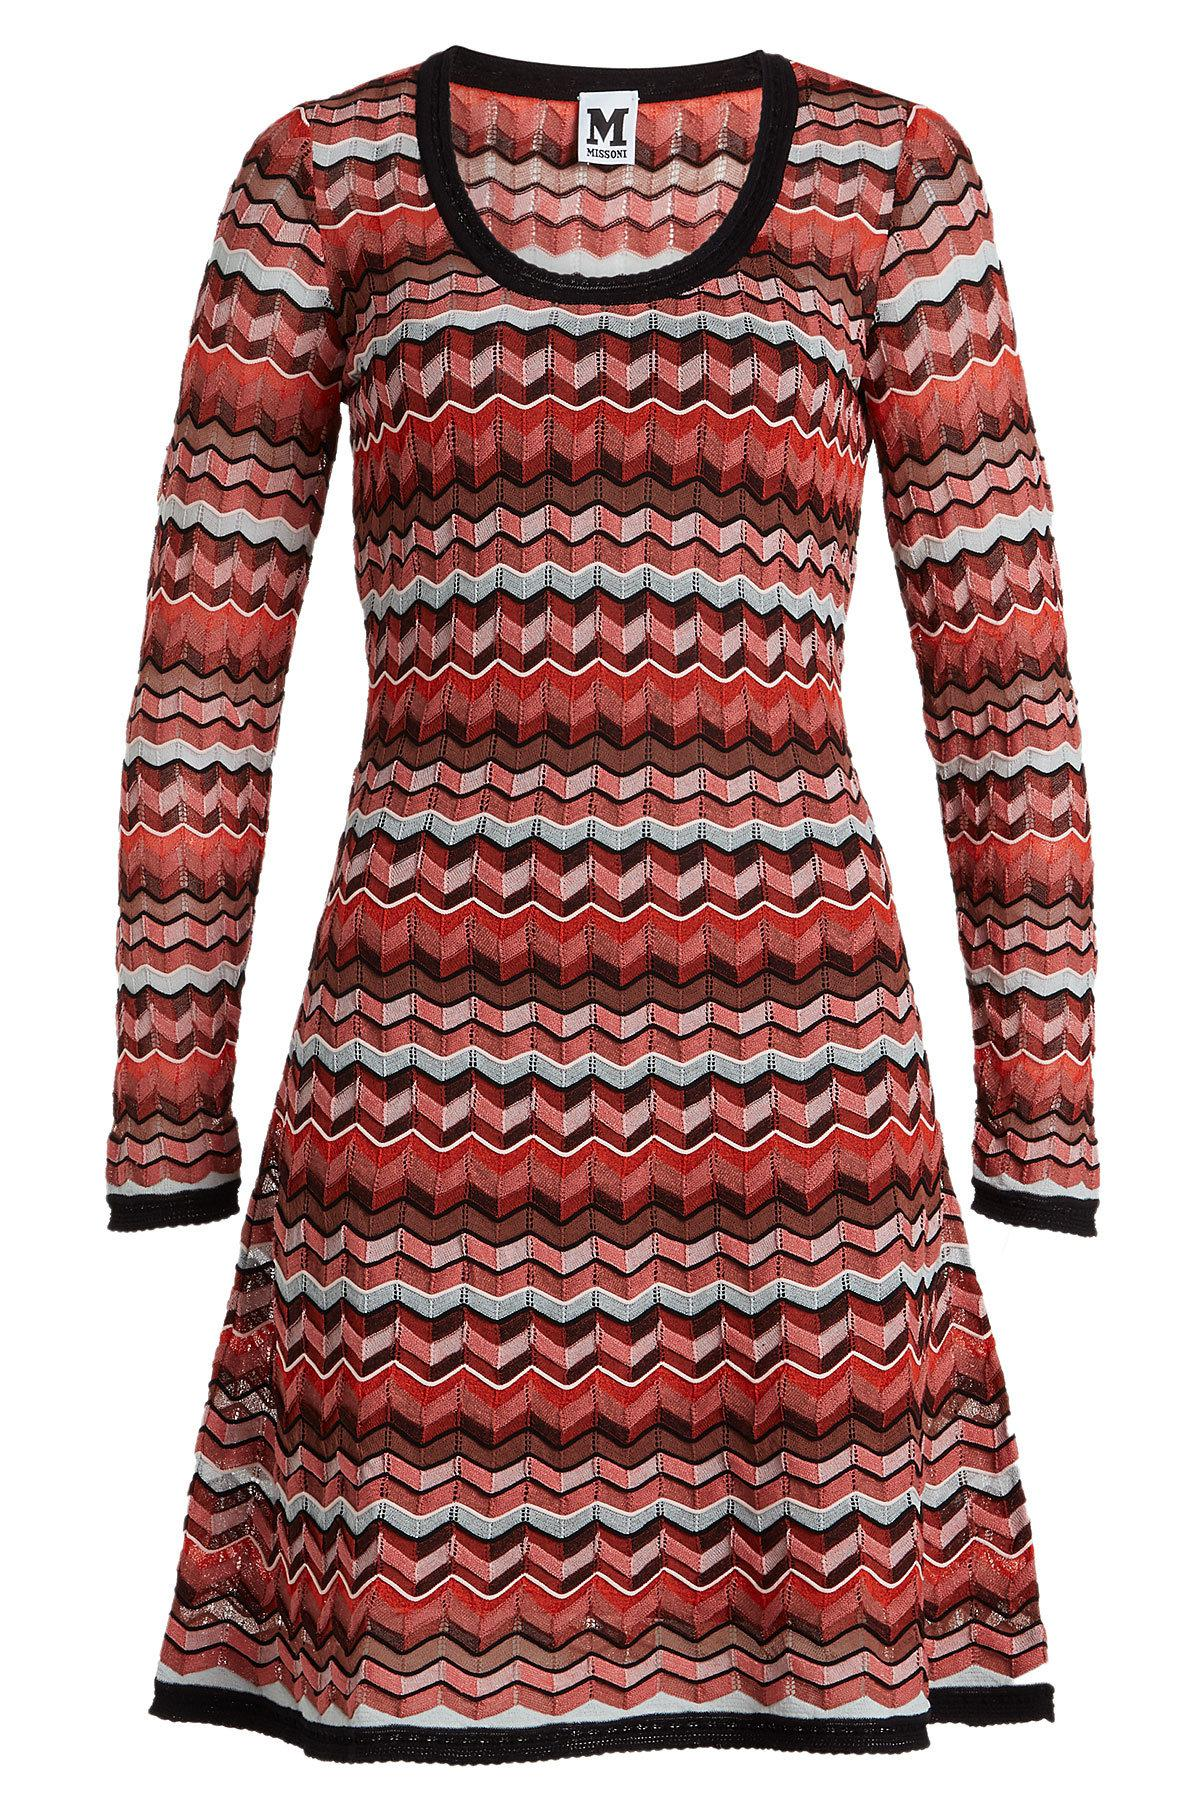 9e80c42a03 Lyst - M Missoni Knit Dress With Cotton And Linen in Red